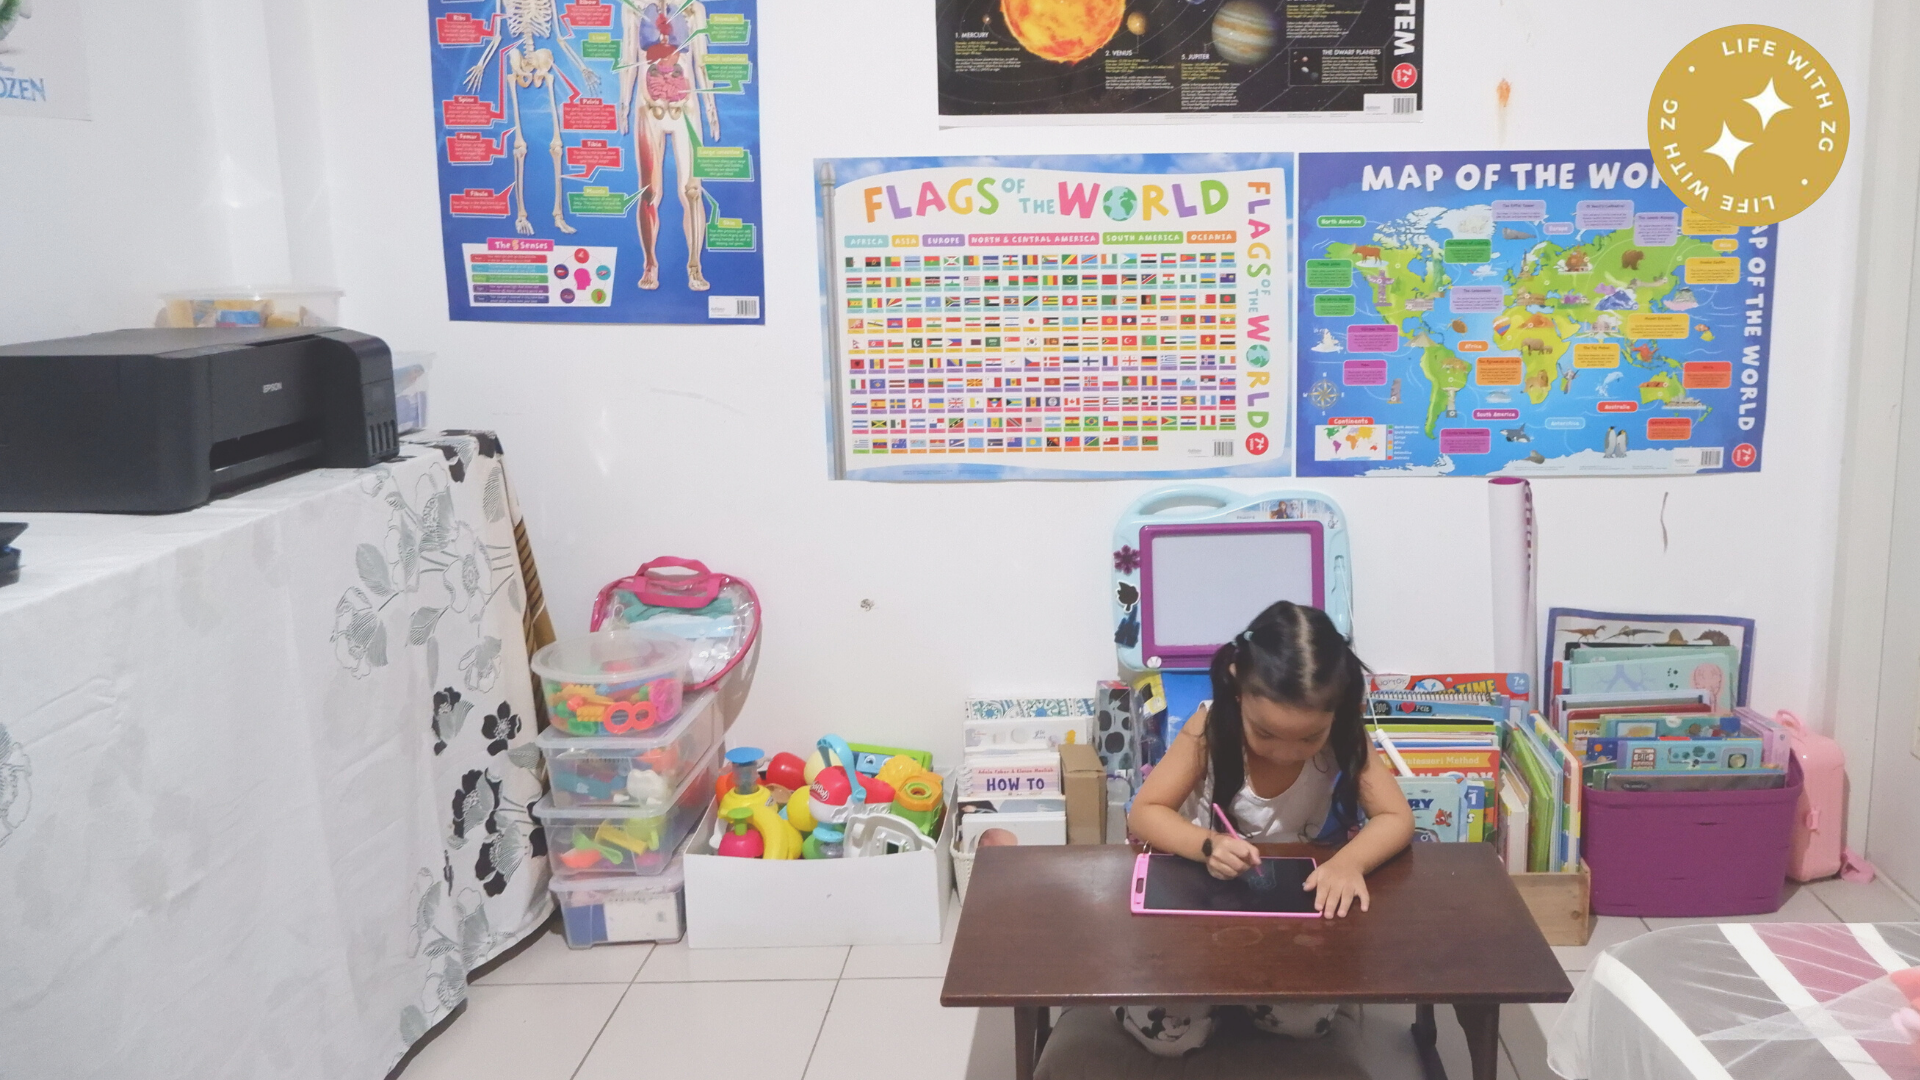 homeschool room setup in the philippines. how to organize and tips to setup your own homeschool room.